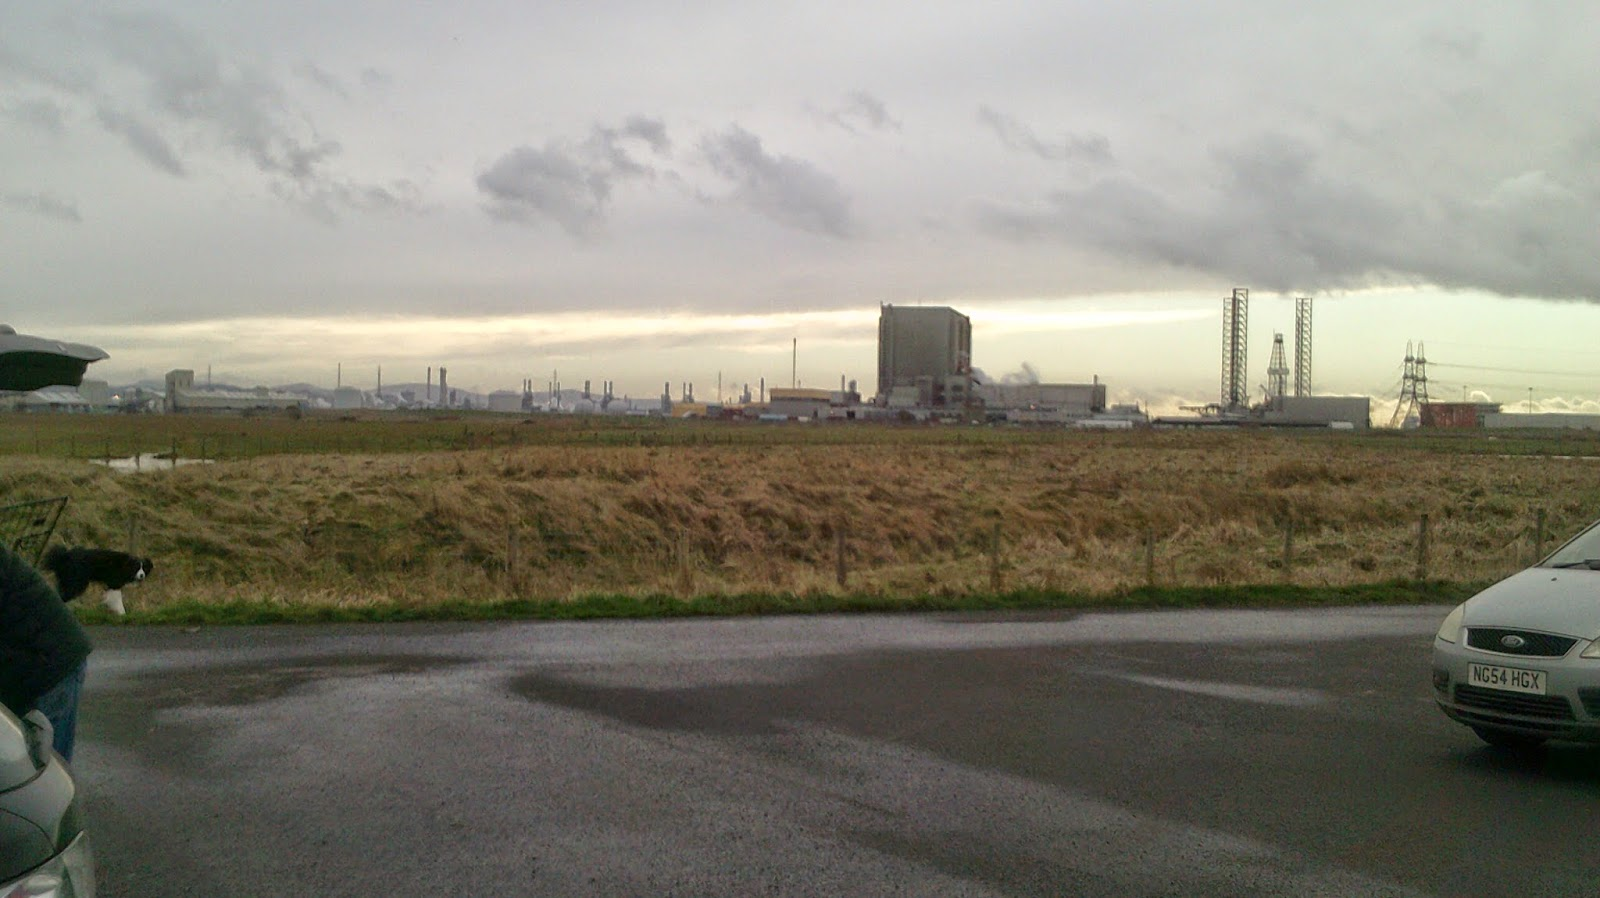 Wigton Physics Hartlepool Nuclear Power Station